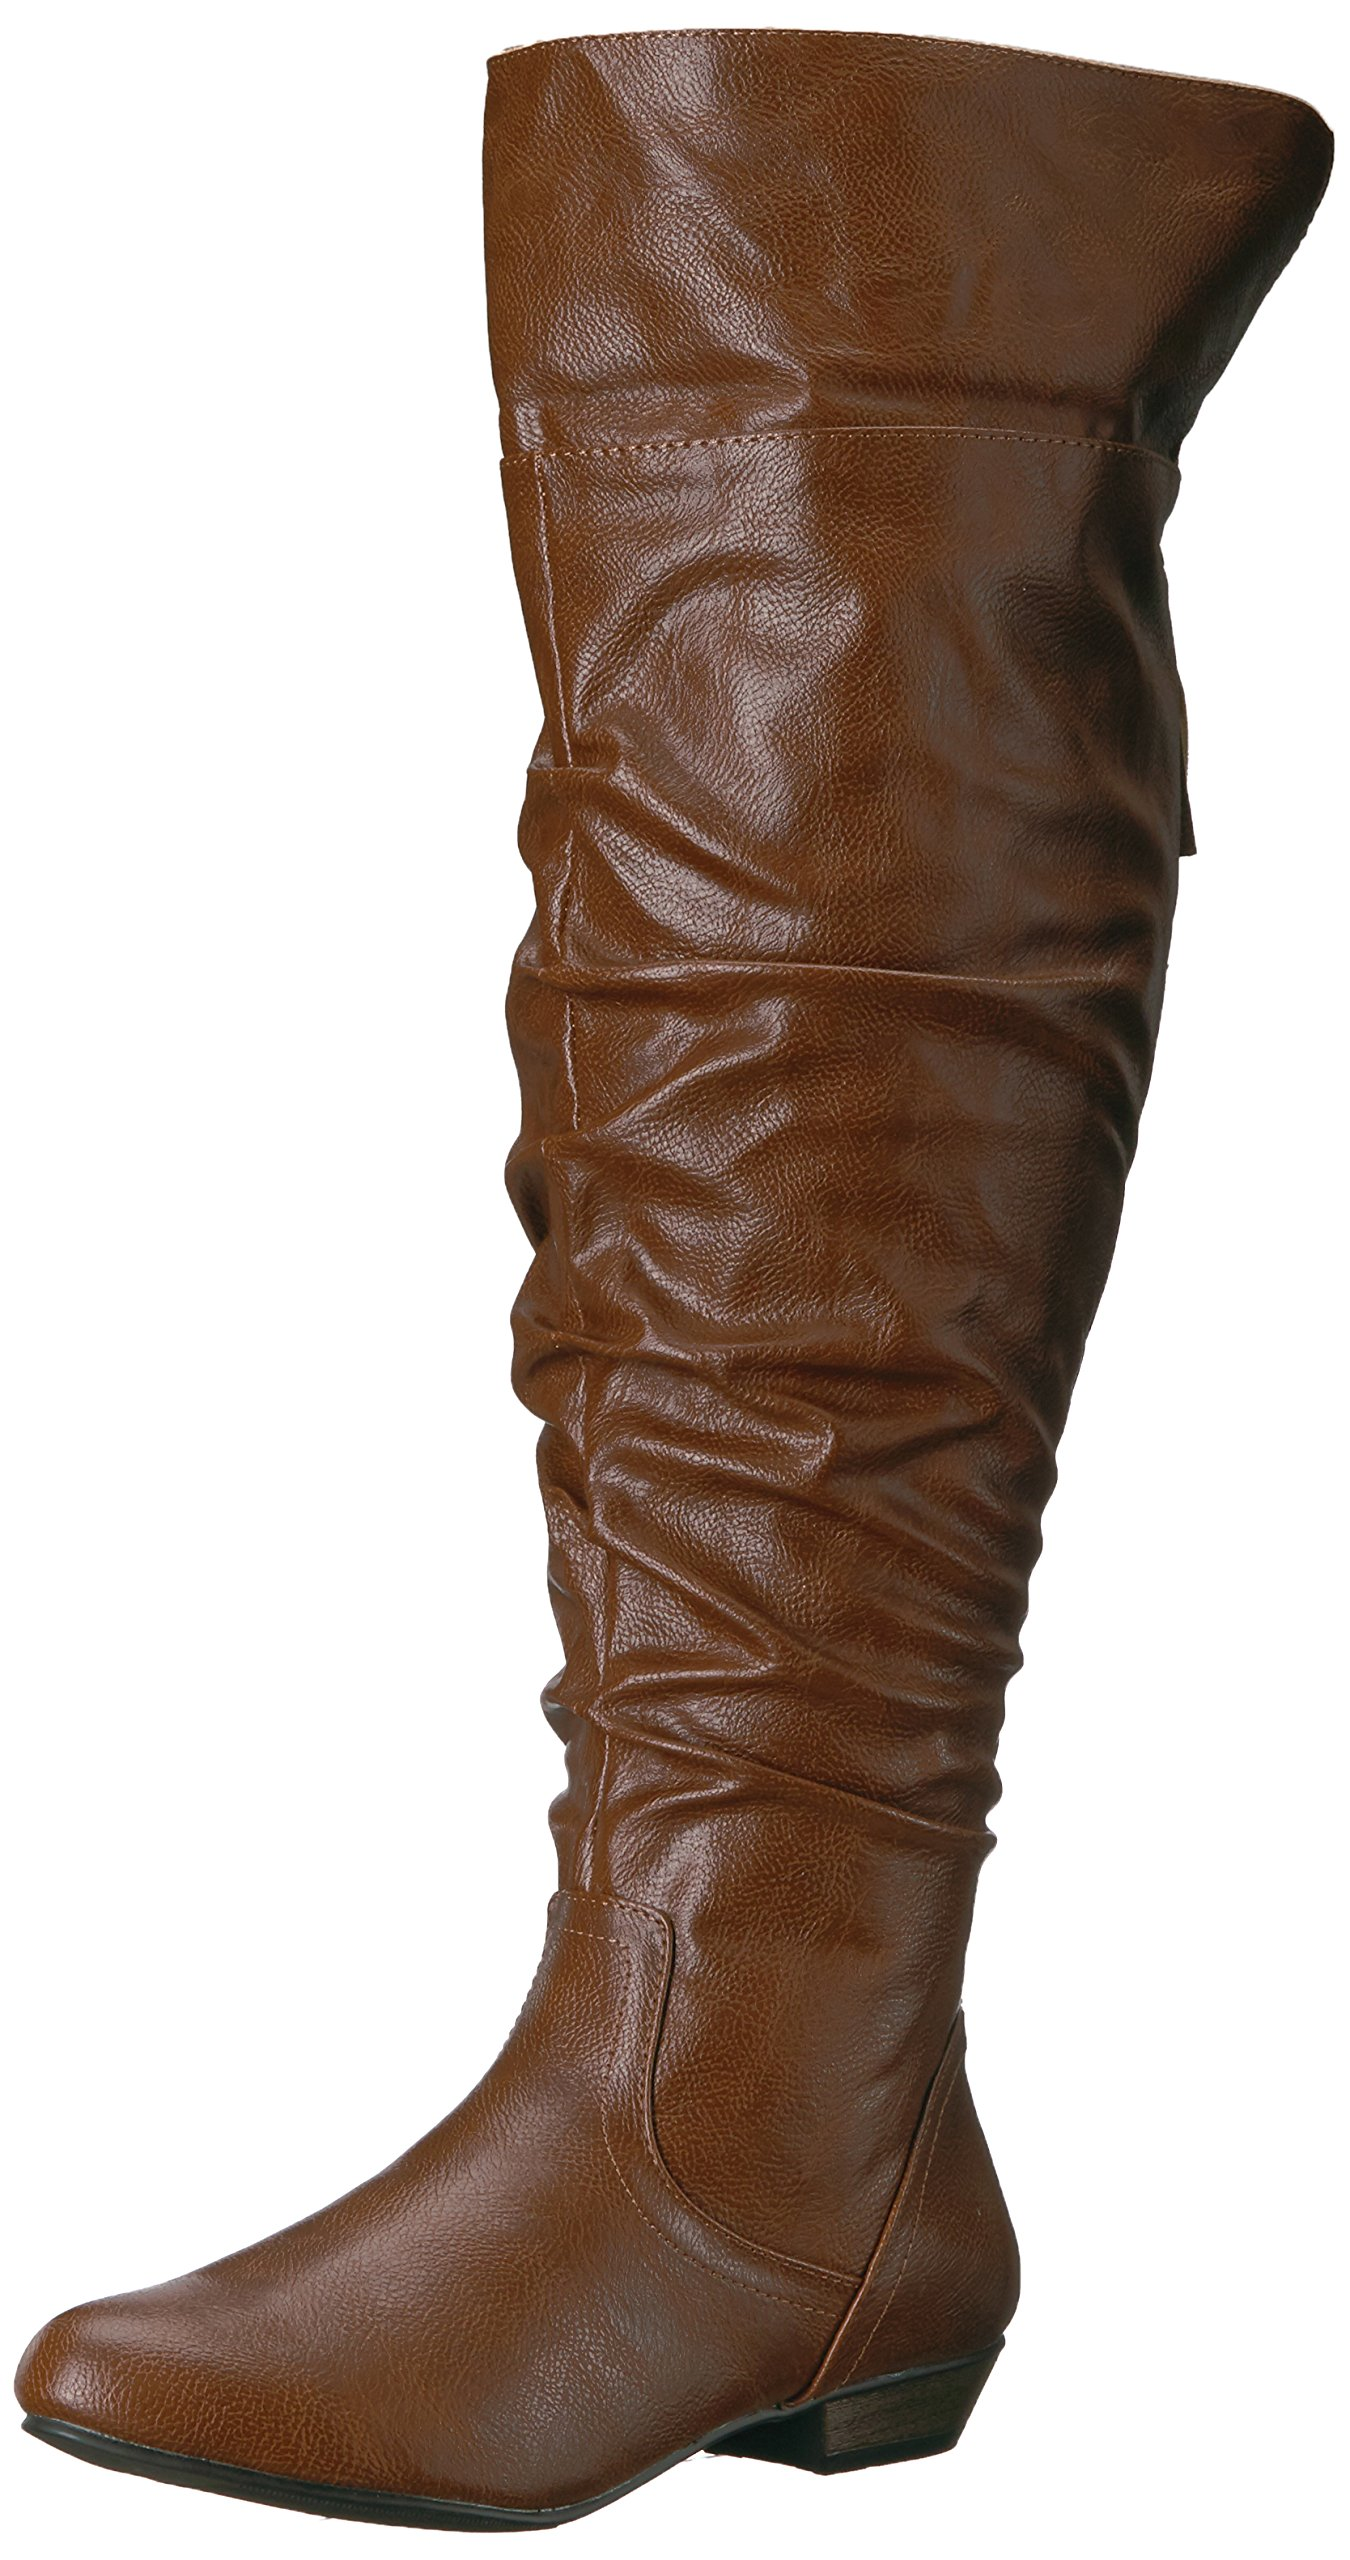 Fergalicious Women's Rookie Wide Calf Slouch Boot, Cognac, 7.5 M US